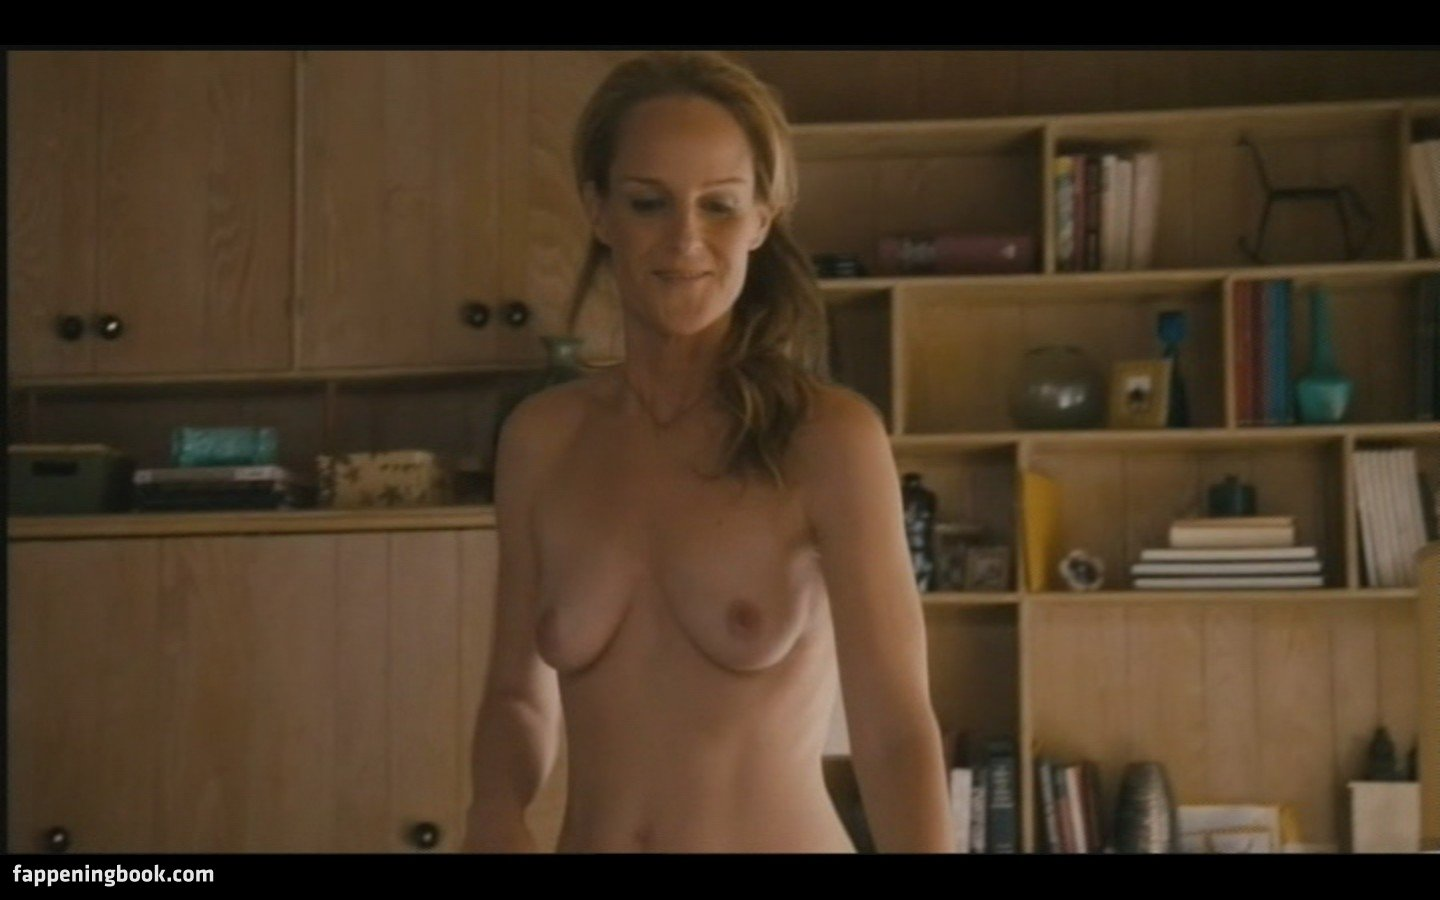 Ally Walker Nude Photos helen hunt nude, sexy, the fappening, uncensored - photo